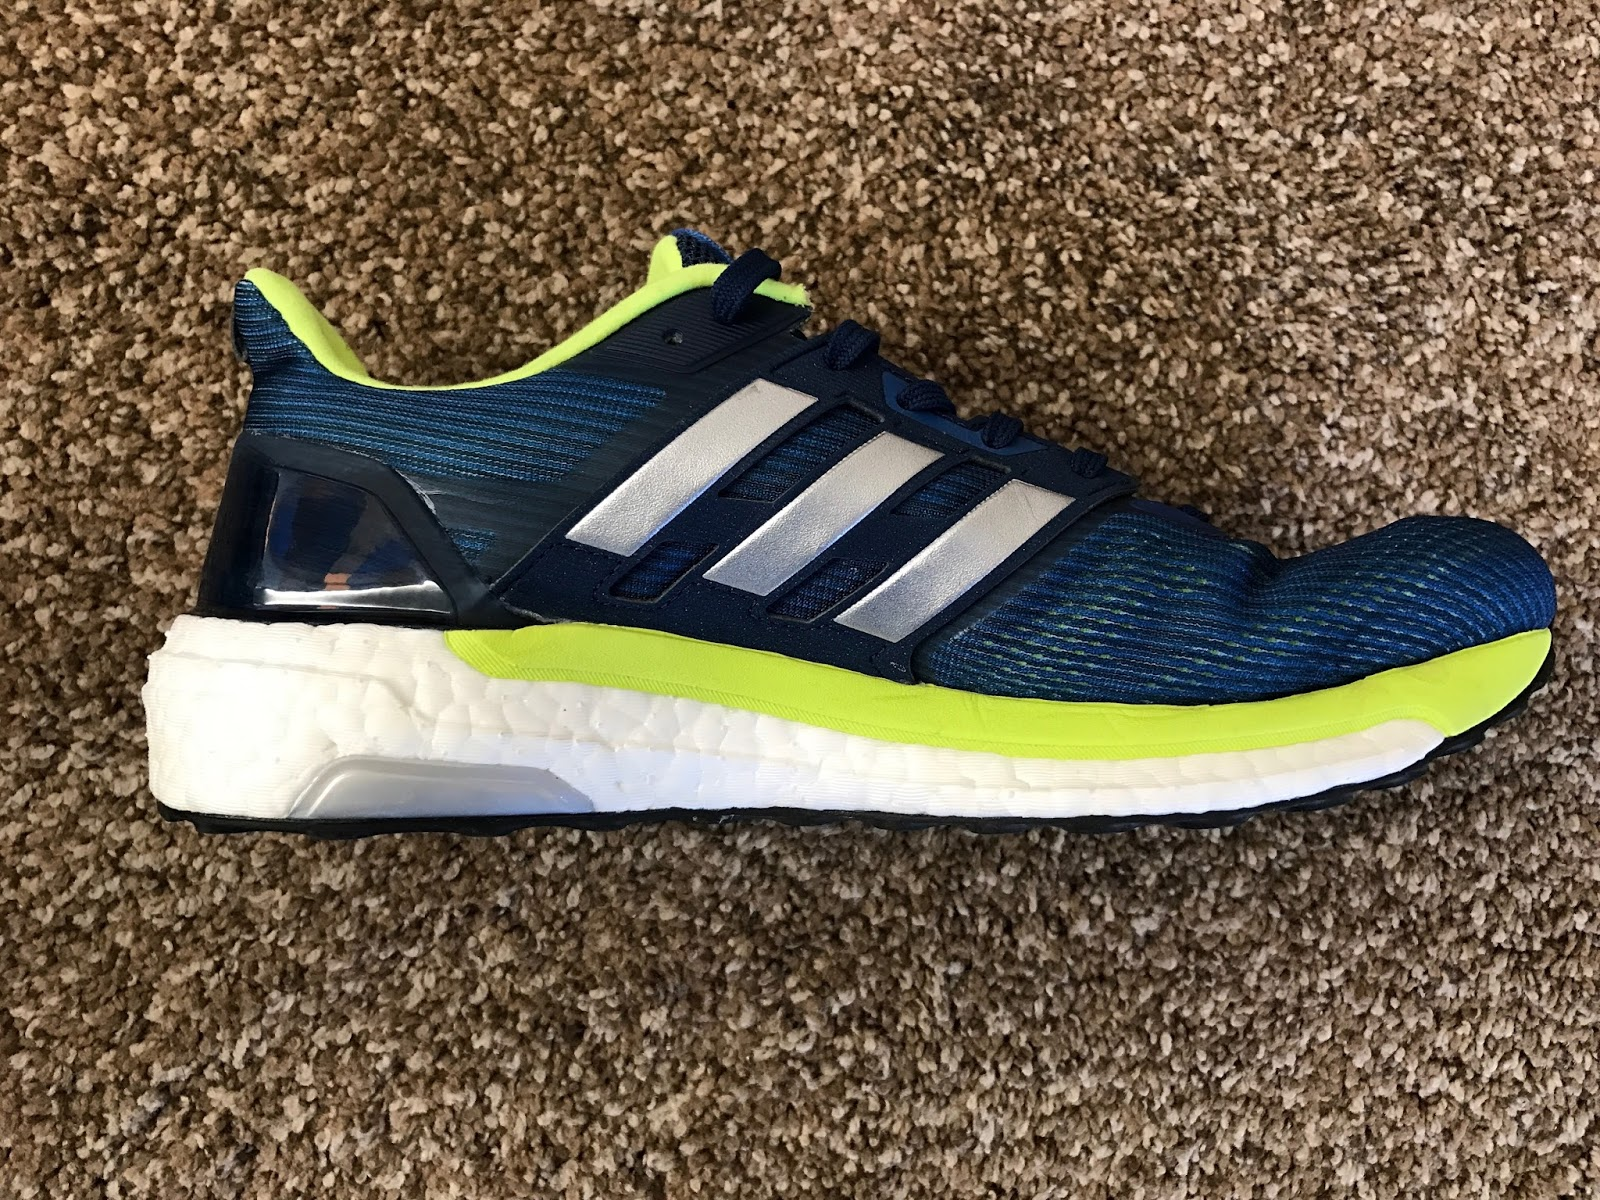 7fc78ff2bac Road Trail Run  adidas Supernova Glide 9 Review  Rebounding